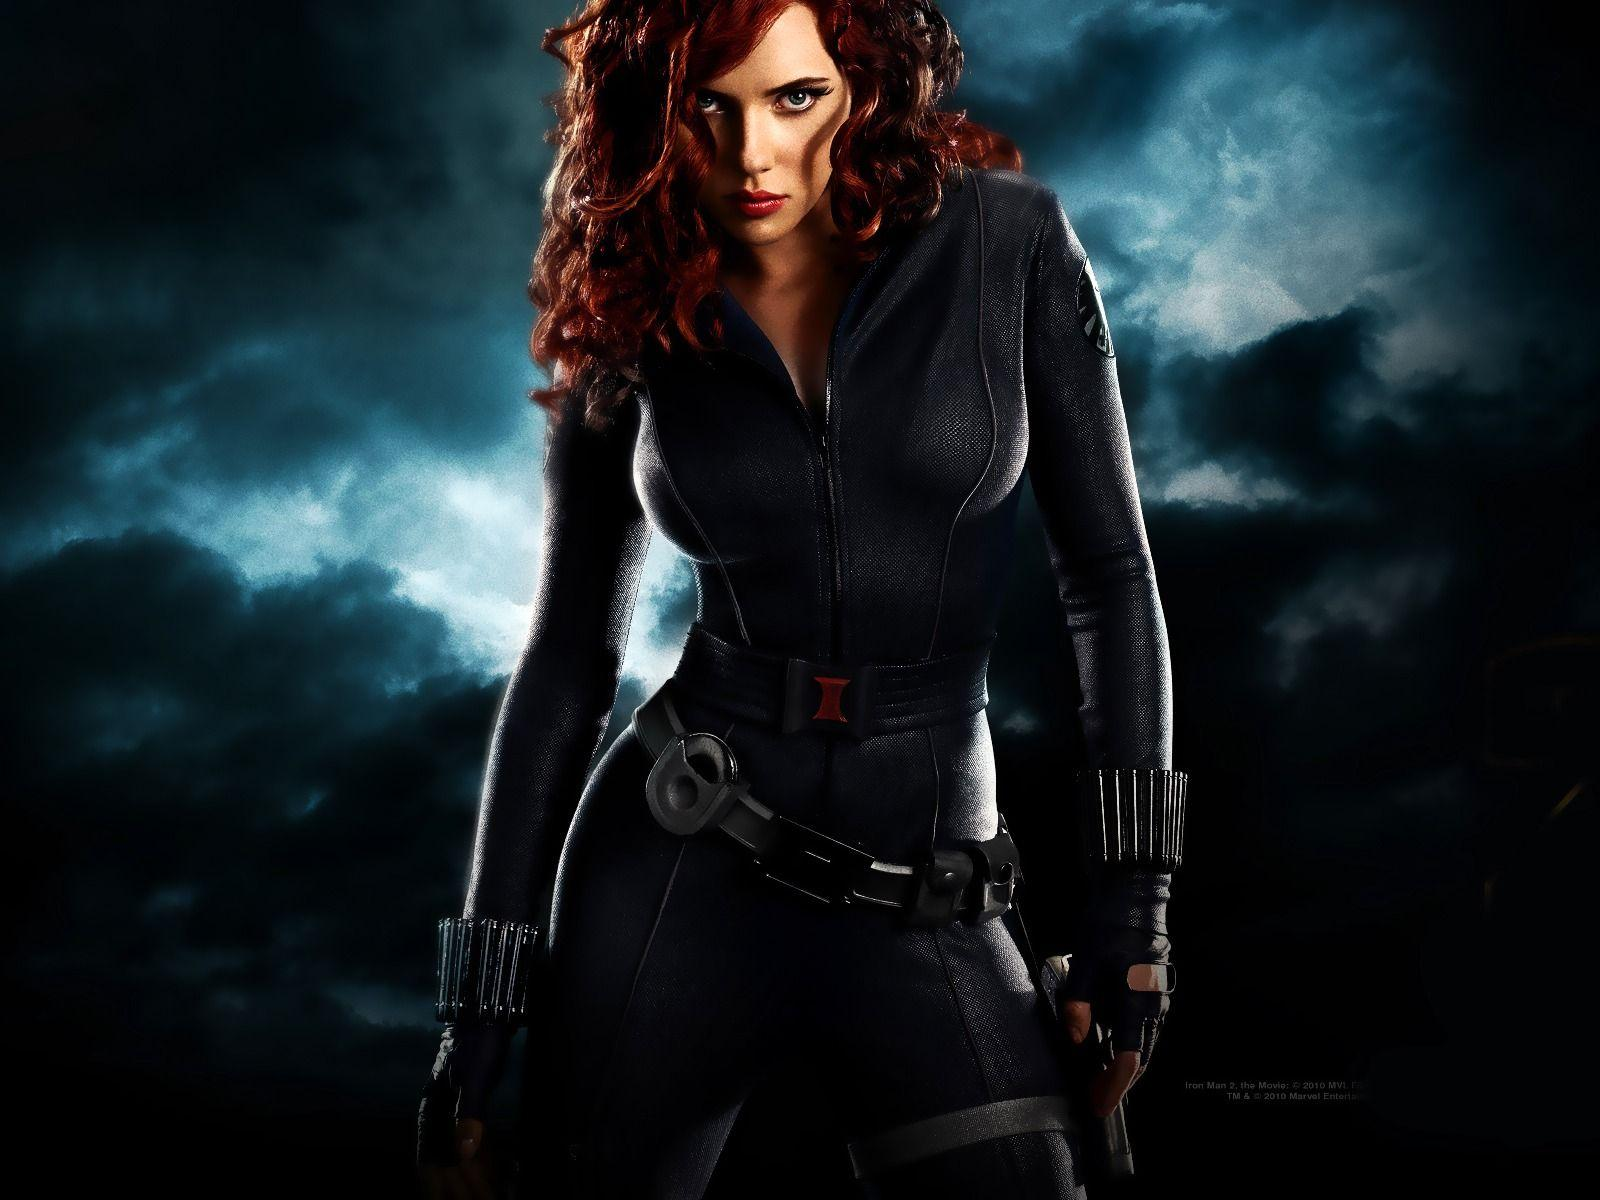 Scarlett Johansson Black Widow Wallpaper Scarlett Johansson Movies